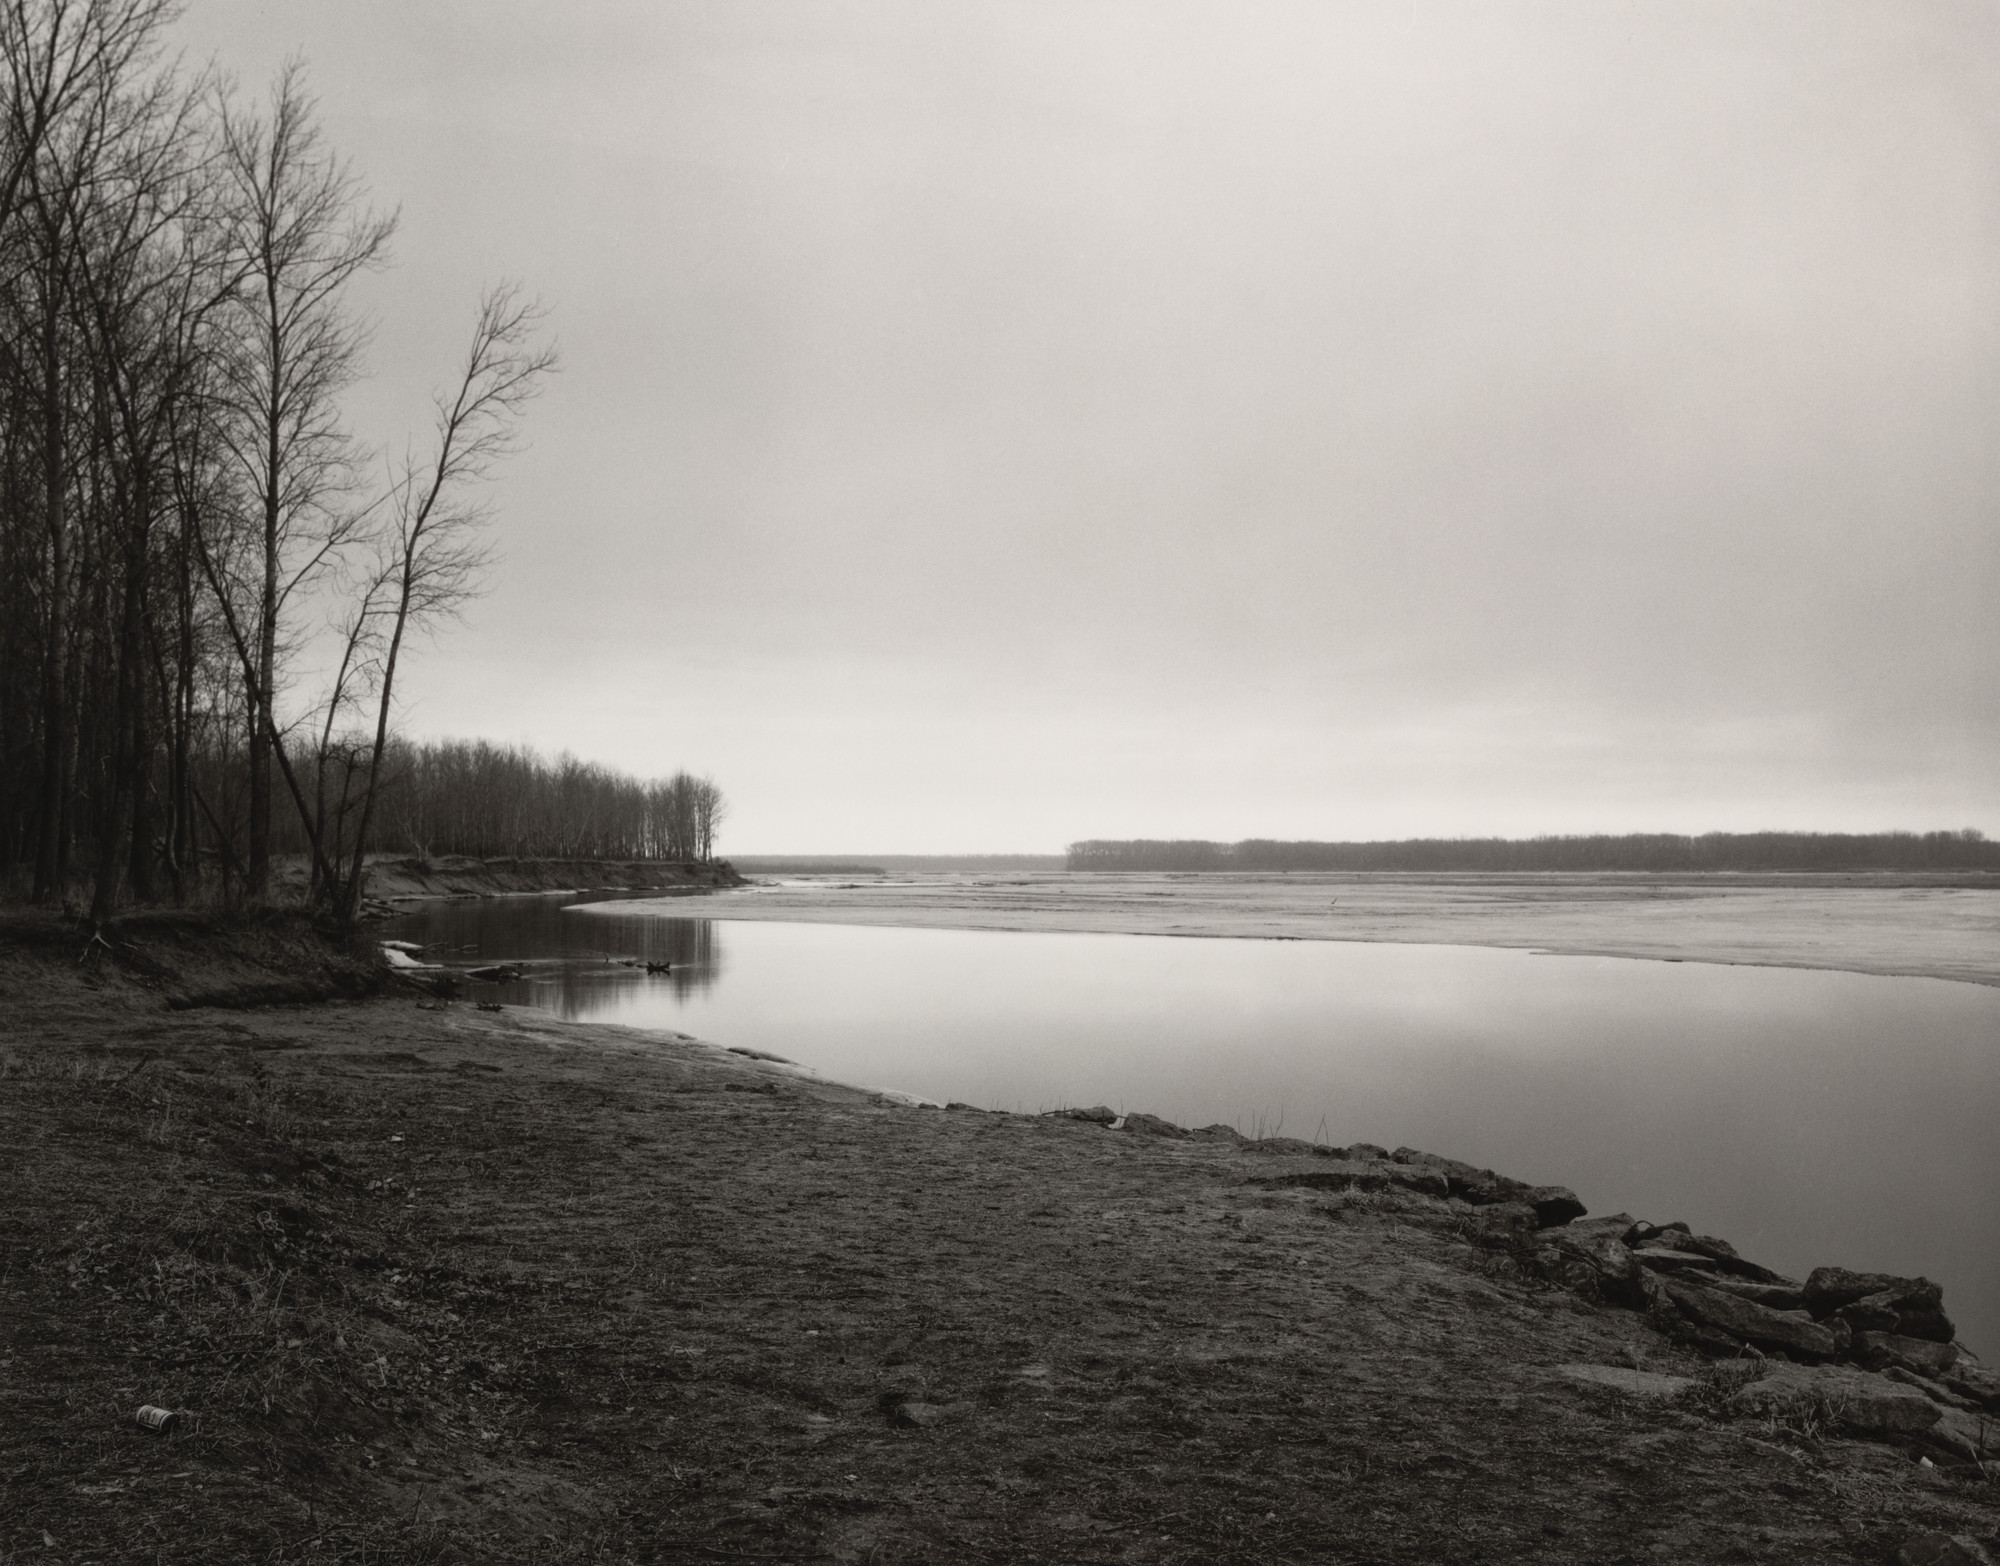 Robert Adams. Missouri River, Clay County, South Dakota. 1976